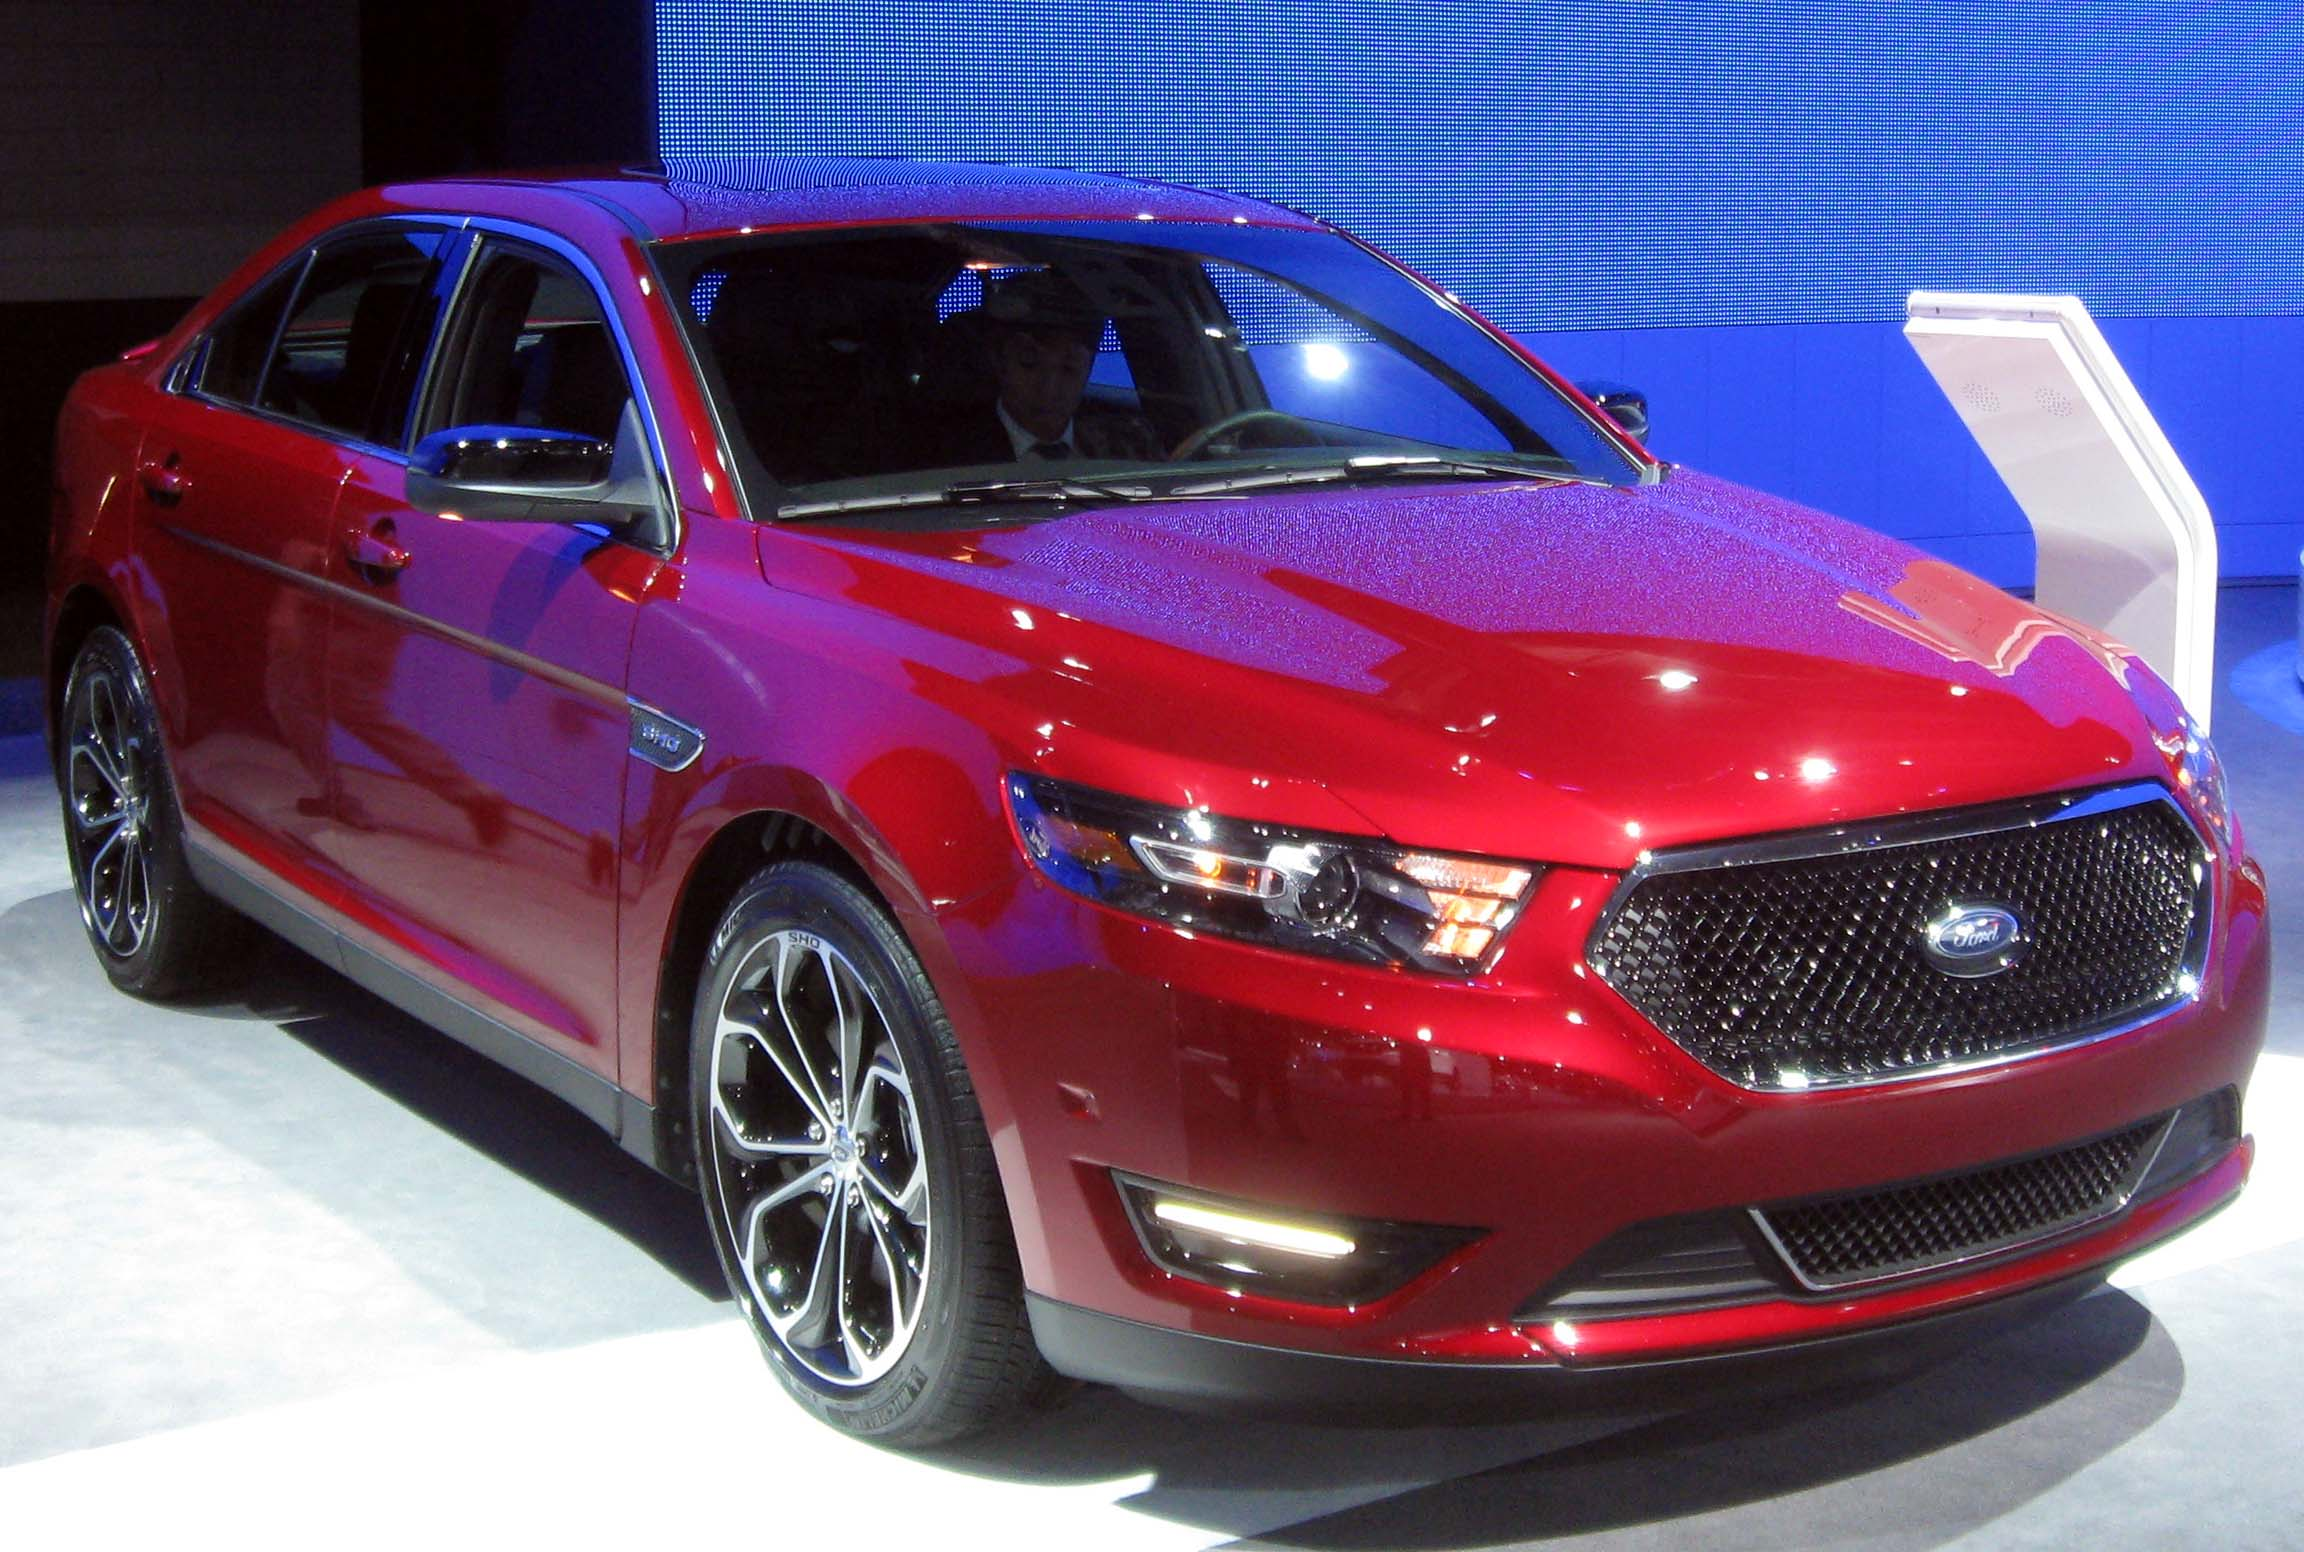 file 2013 ford taurus sho 2012 nyias jpg wikimedia commons. Black Bedroom Furniture Sets. Home Design Ideas